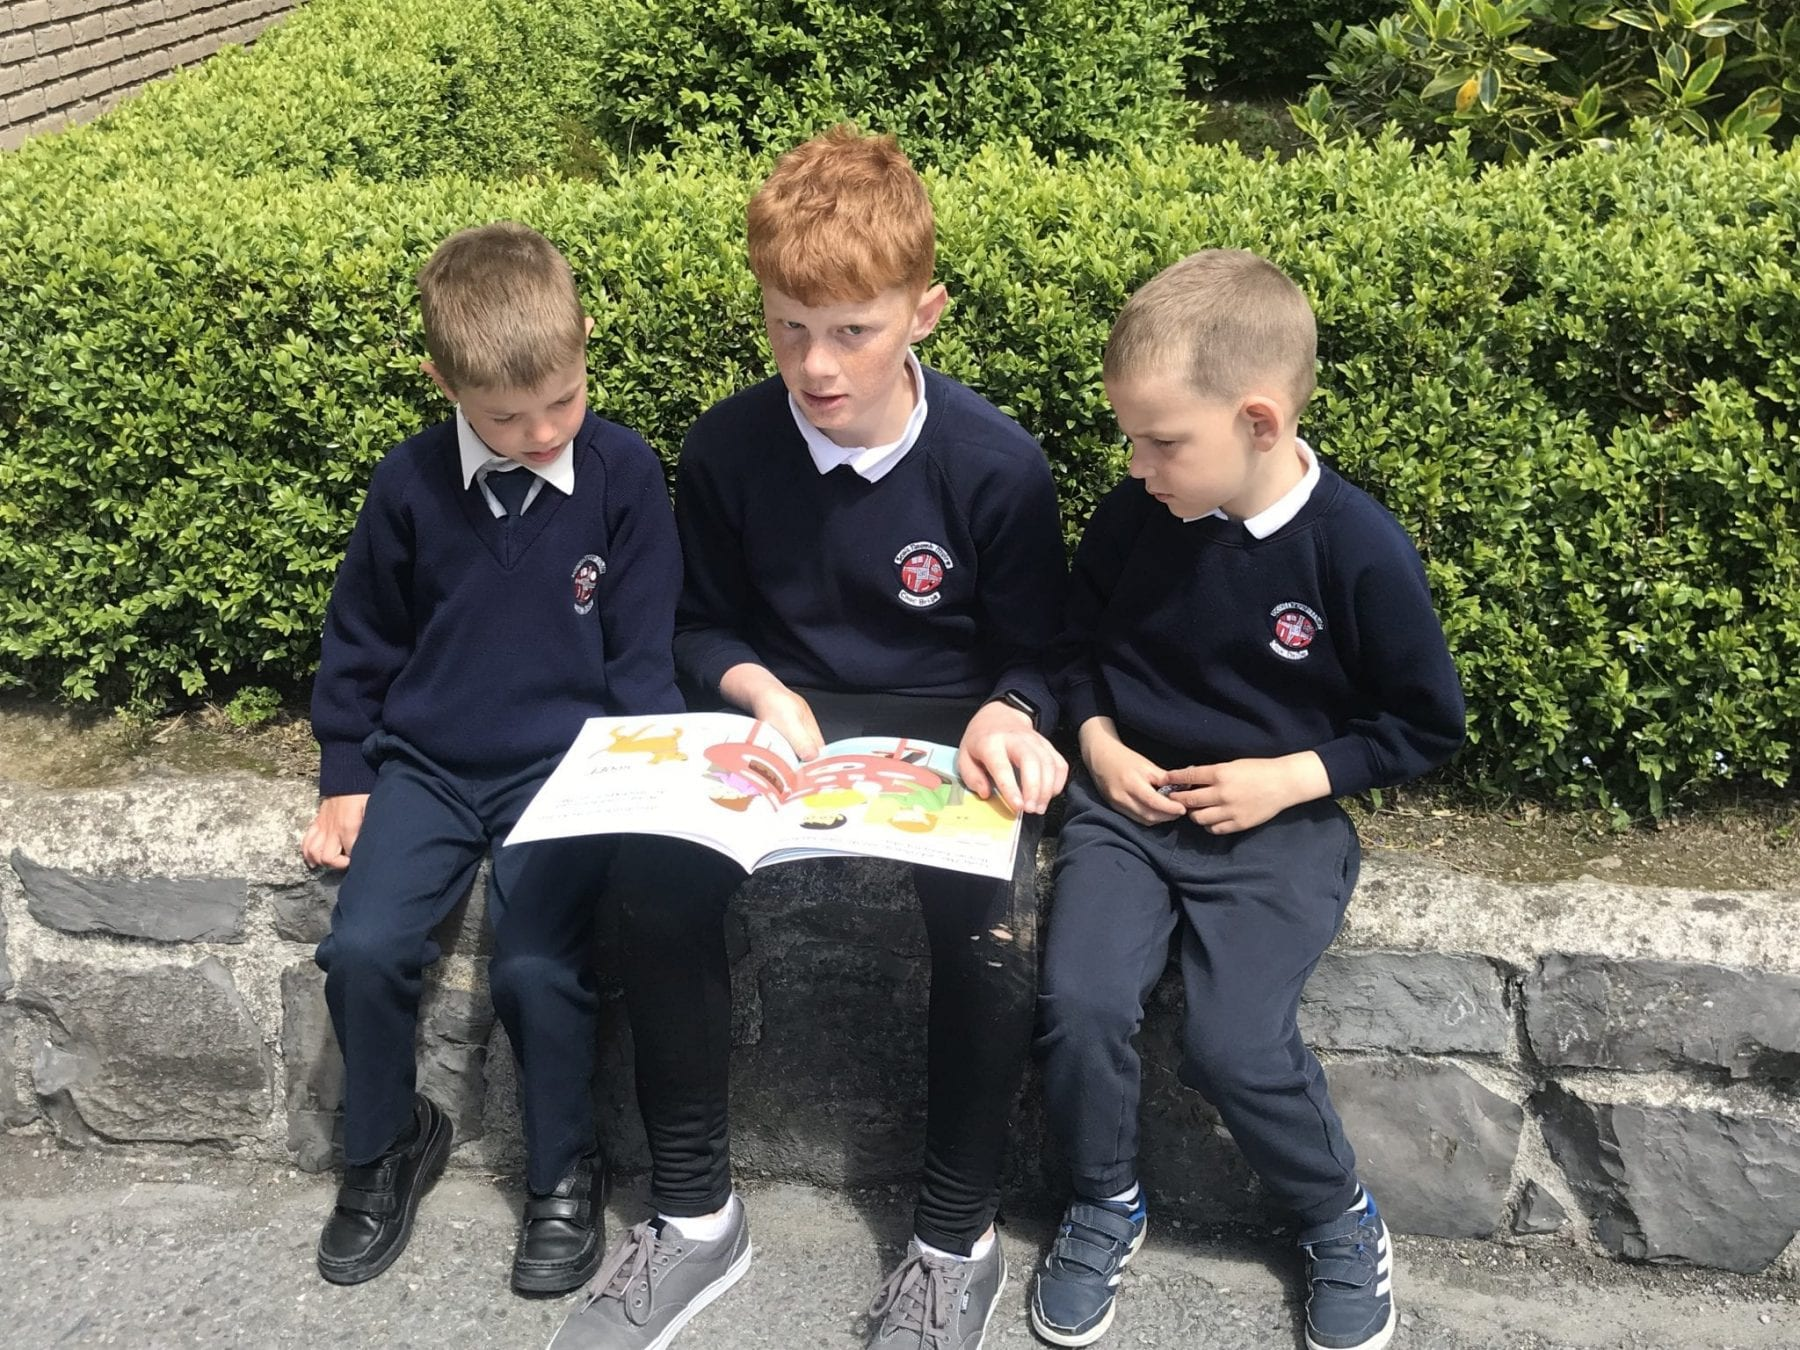 Our Last Buddy Reading Session